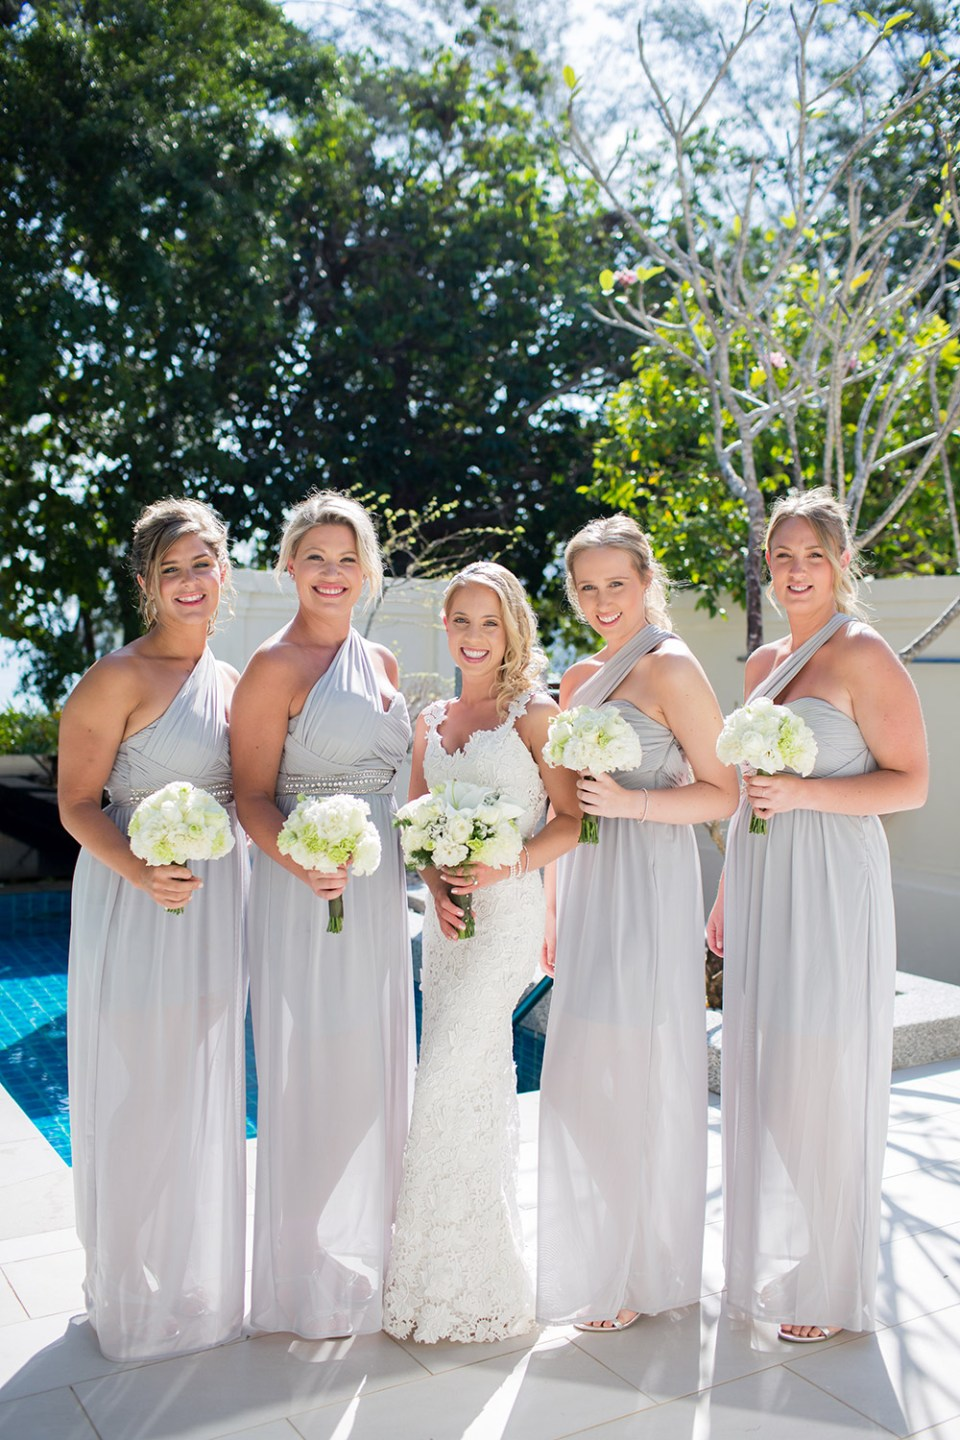 Photo by Stories by Integricity. www.theweddingnotebook.com